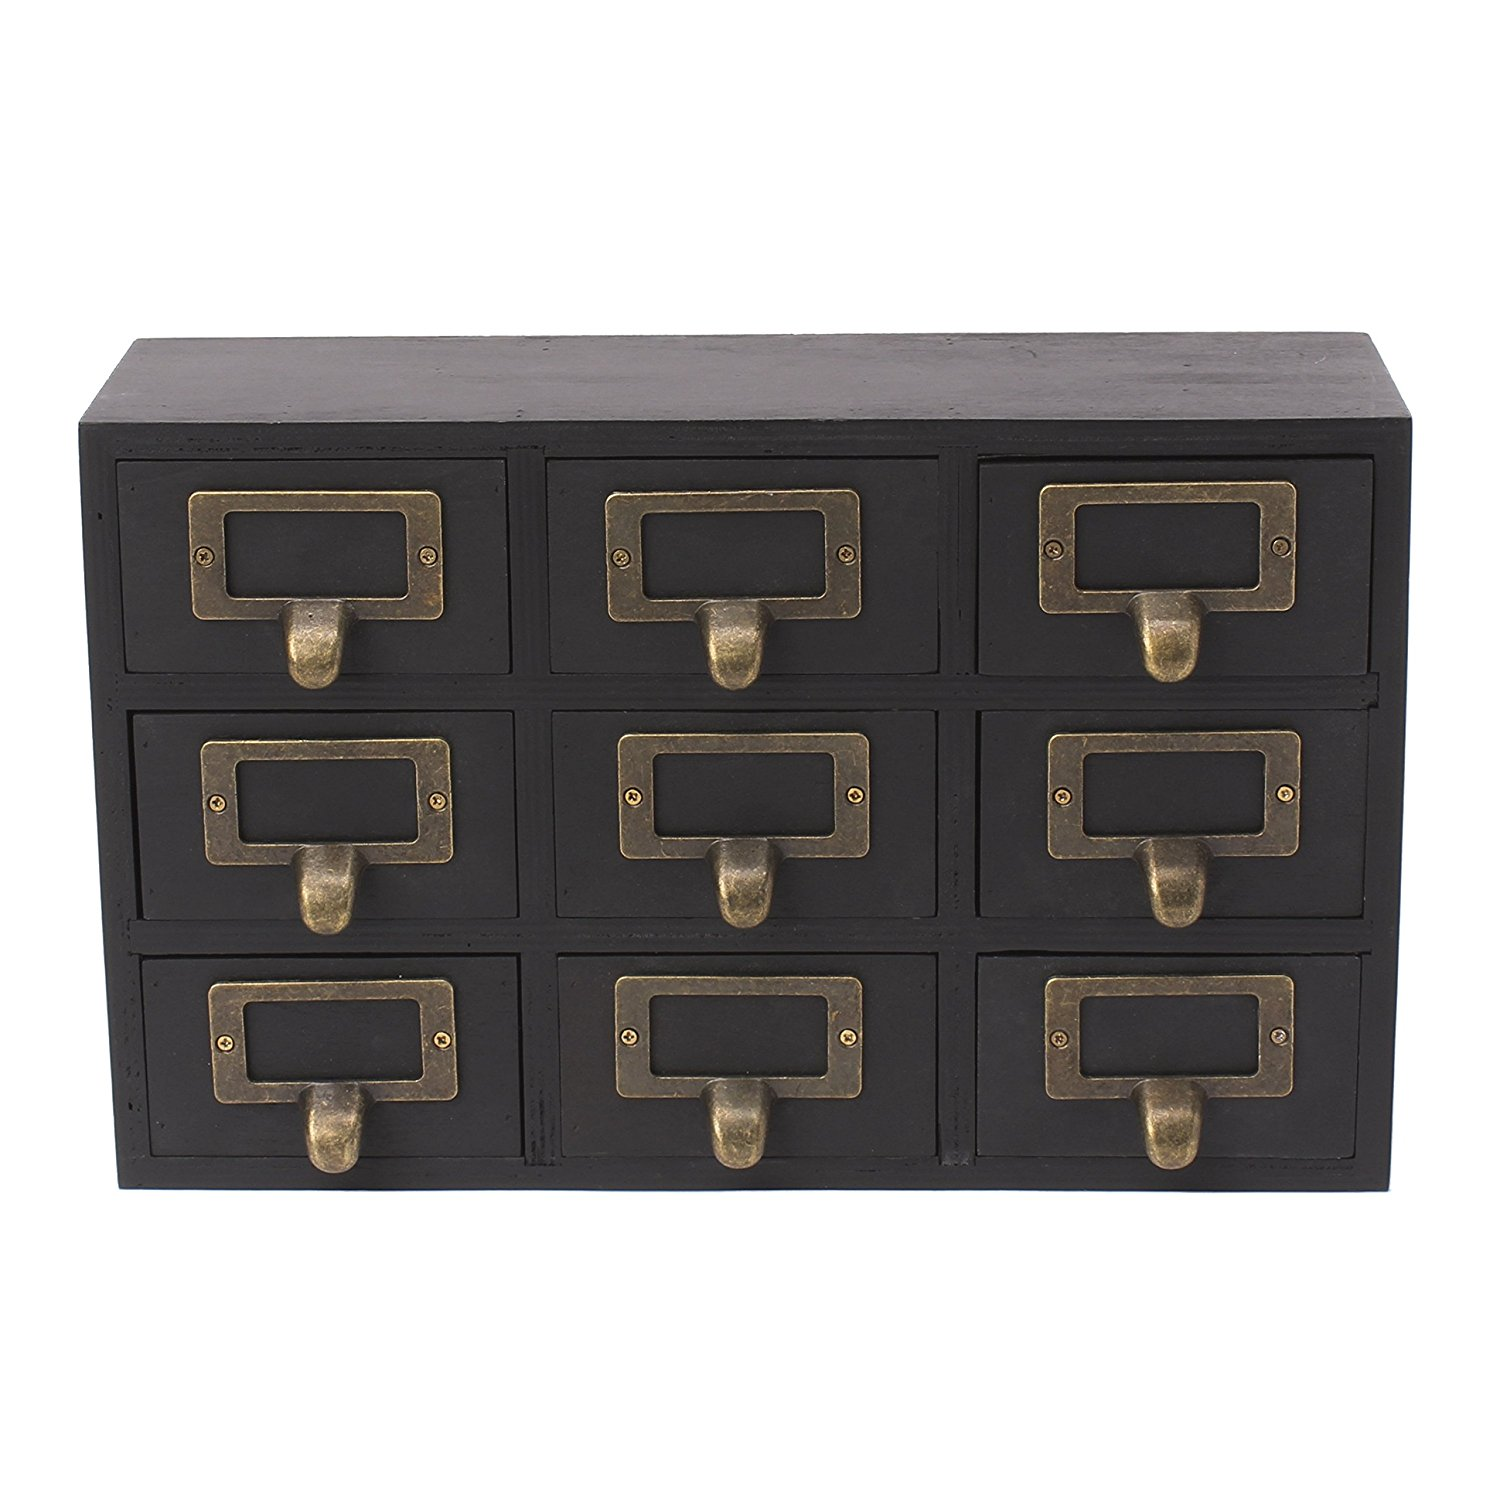 Desk Top Drawers Cheap Desktop Drawer Units Find Desktop Drawer Units Deals On